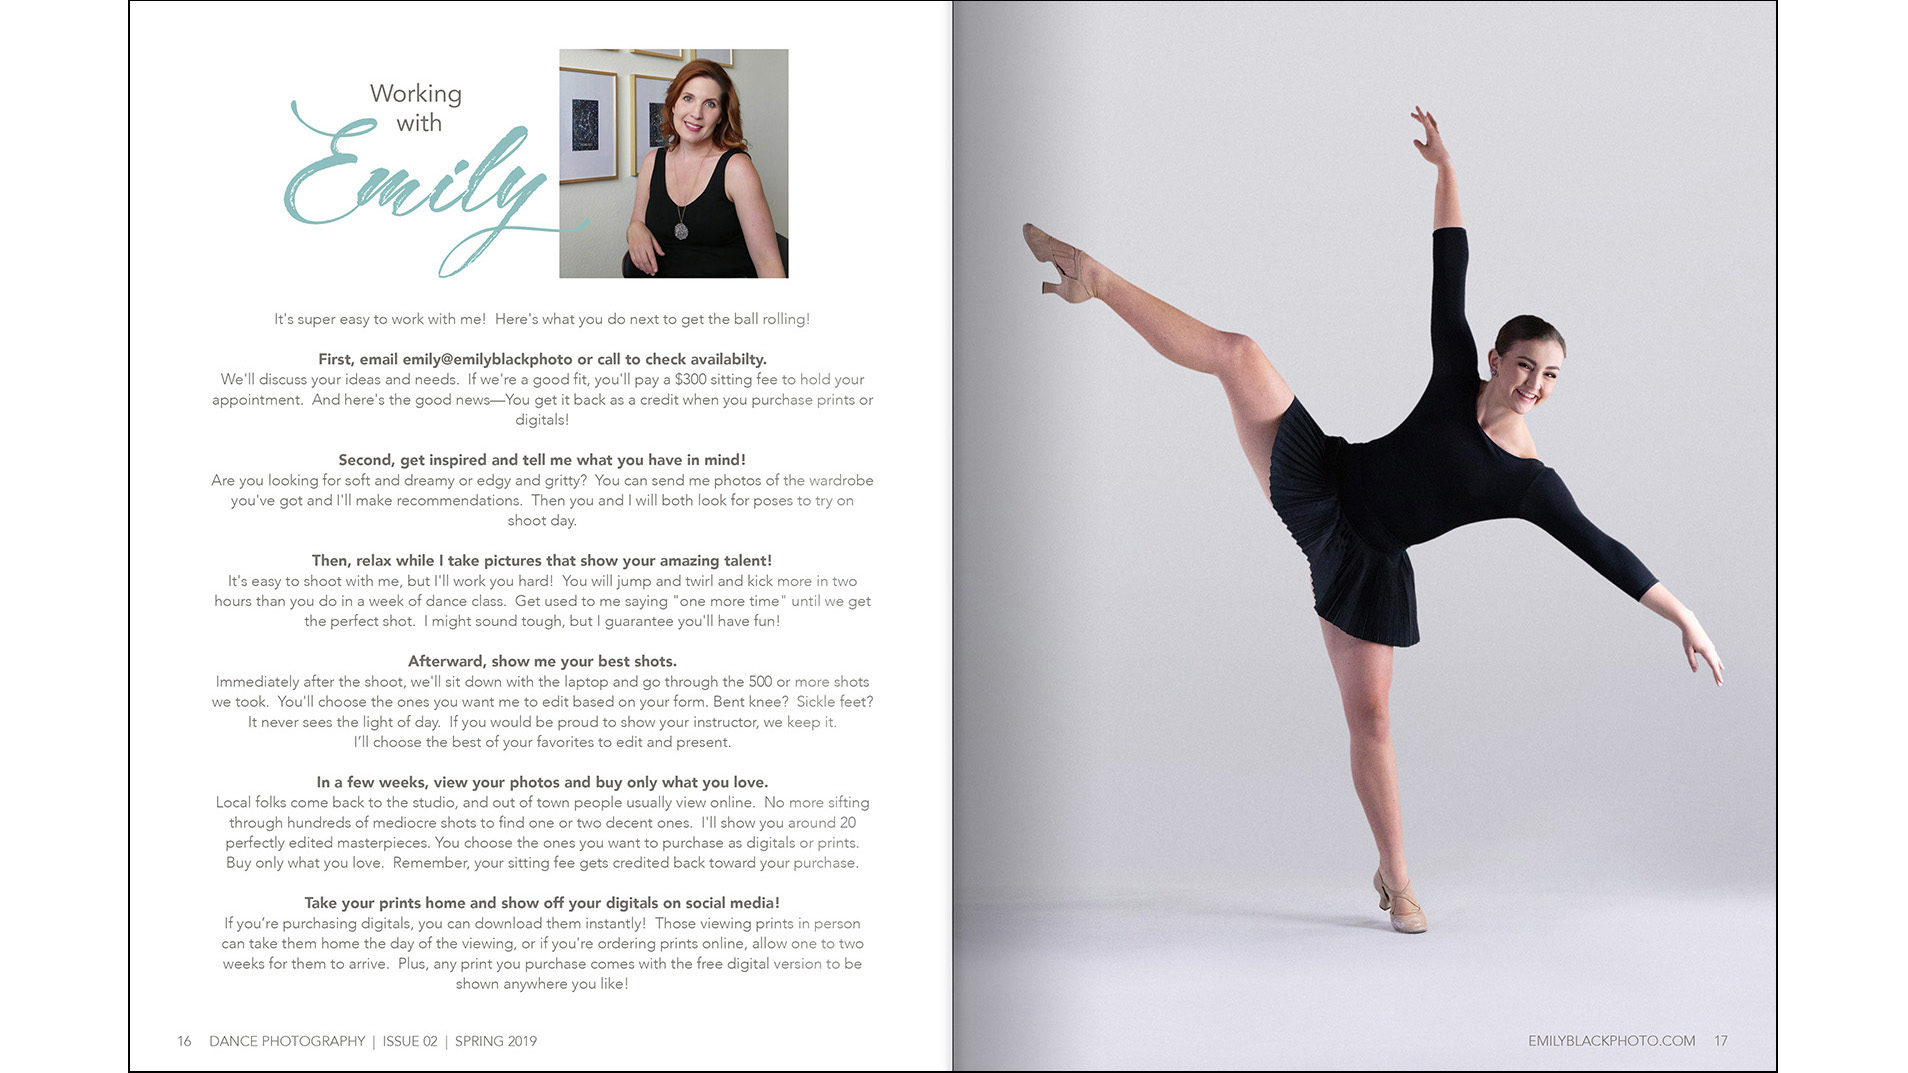 "About the Photographer - I chose a full page photo of a happy, enthusiastic dancer across from the ""how to work with me"" section to subtly hint that I'm easy and fun to shoot with."